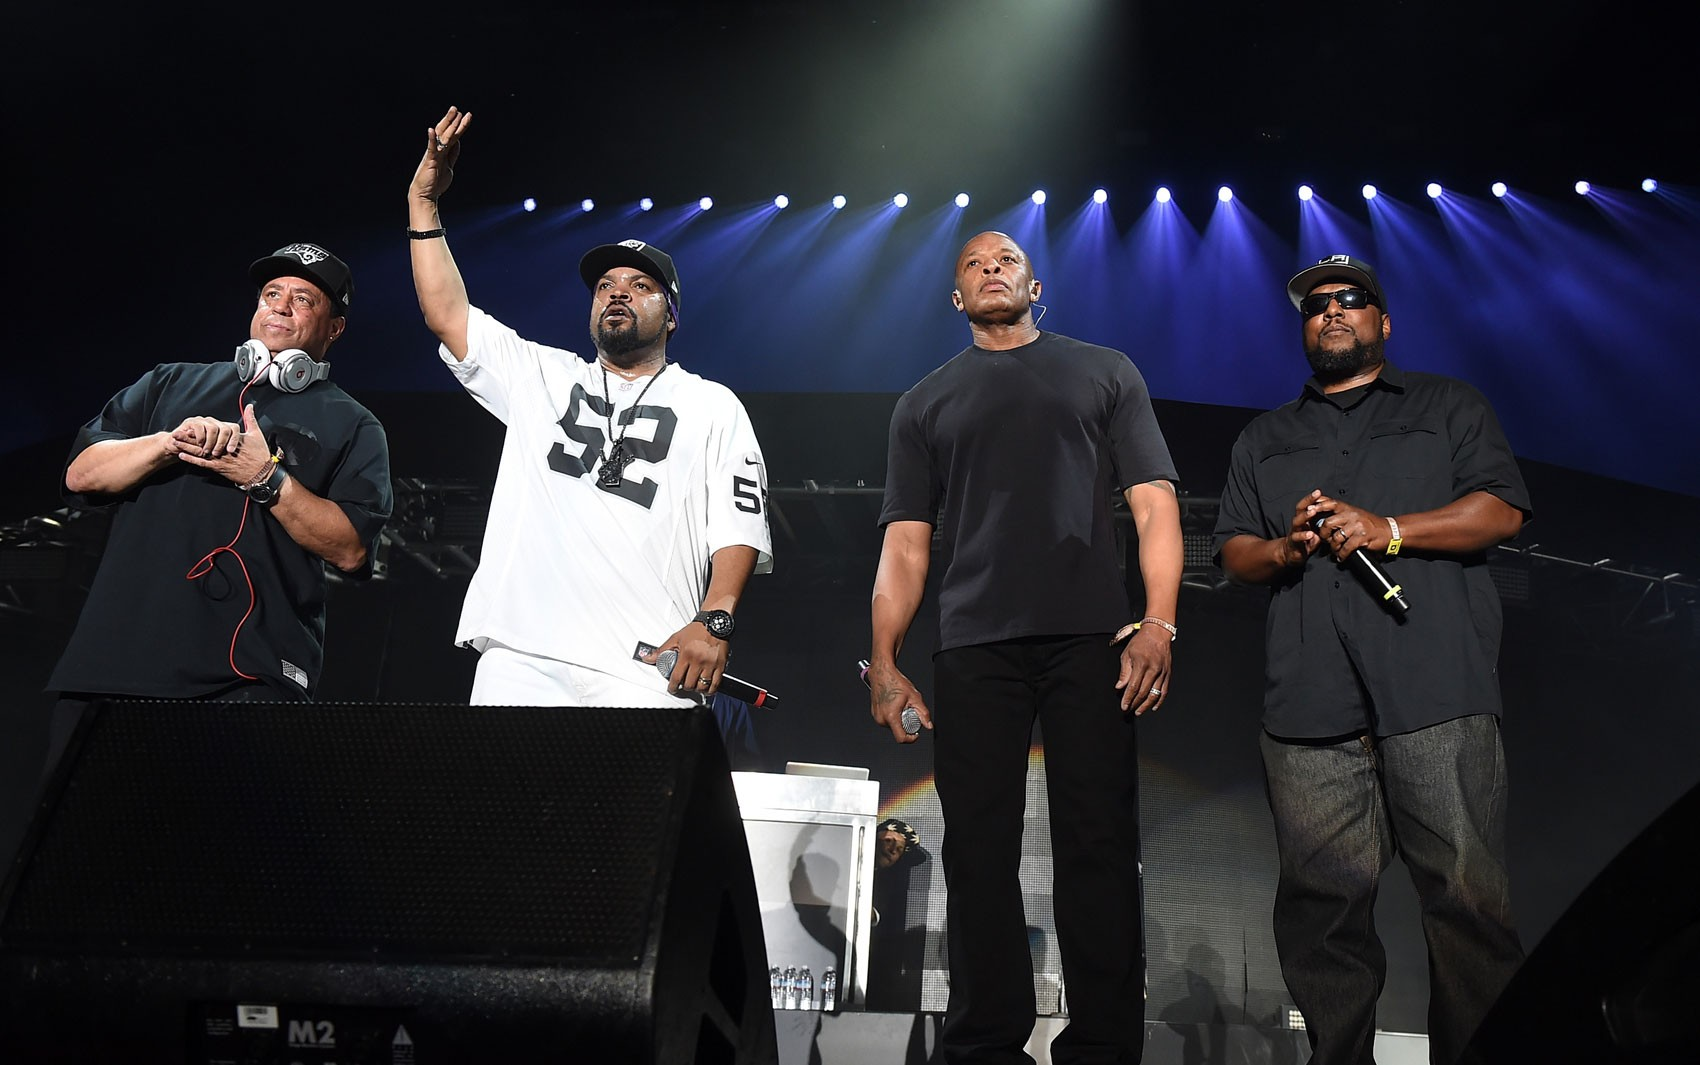 Ex-integrantes do N.W.A, DJ Yella, Ice Cube, Dr. Dre e MC Ren se apresentam no Coachella, em Indio, Califórnia, no sábado (23) (Foto: Kevin Winter/Getty Images for Coachella/AFP)